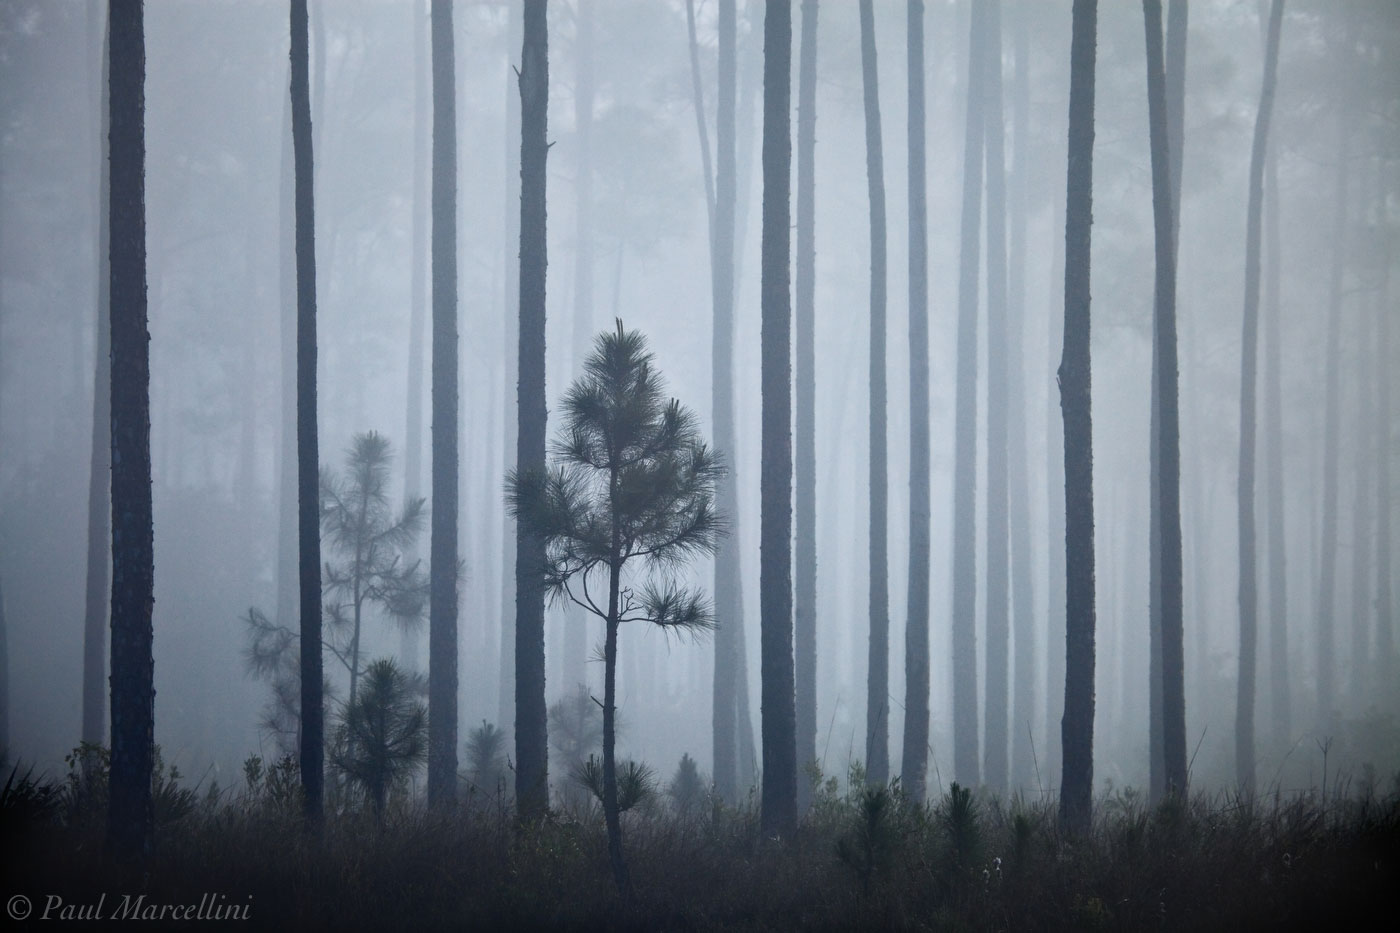 everglades, pines, fog, morning, Florida, nature, photography, florida national parks, photo